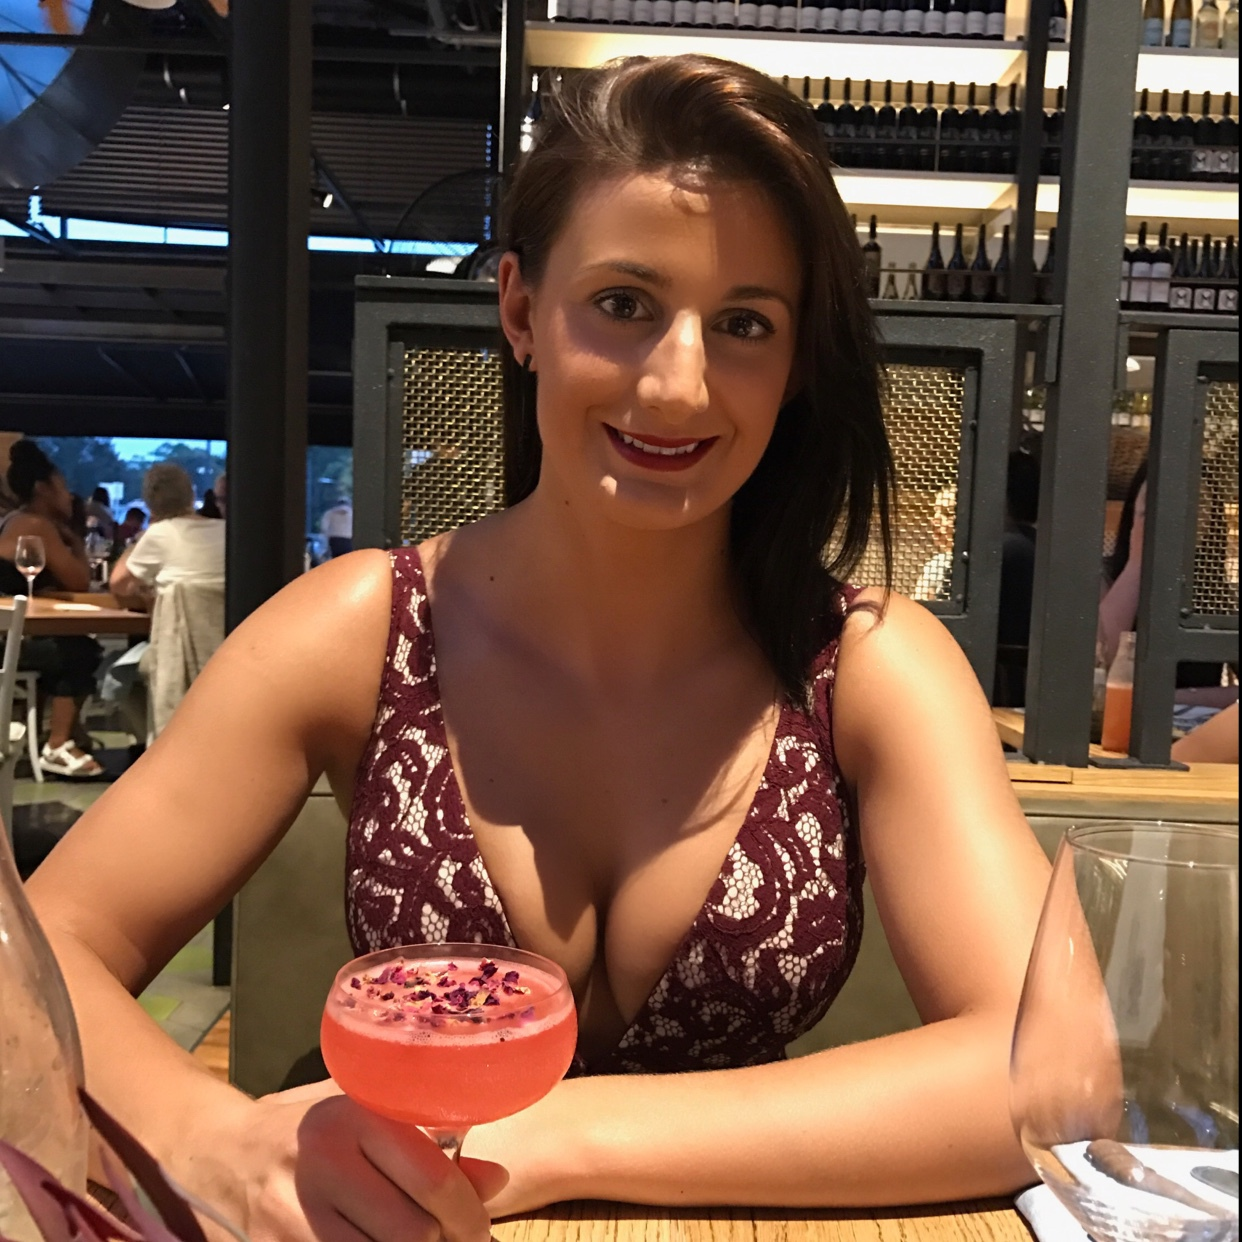 ryde single girls Meet new people chat, date and meet with over 5 million people ilikeyou is a great place to meet men and women if you're looking for a person to chat with or free dating you've come to the right place.